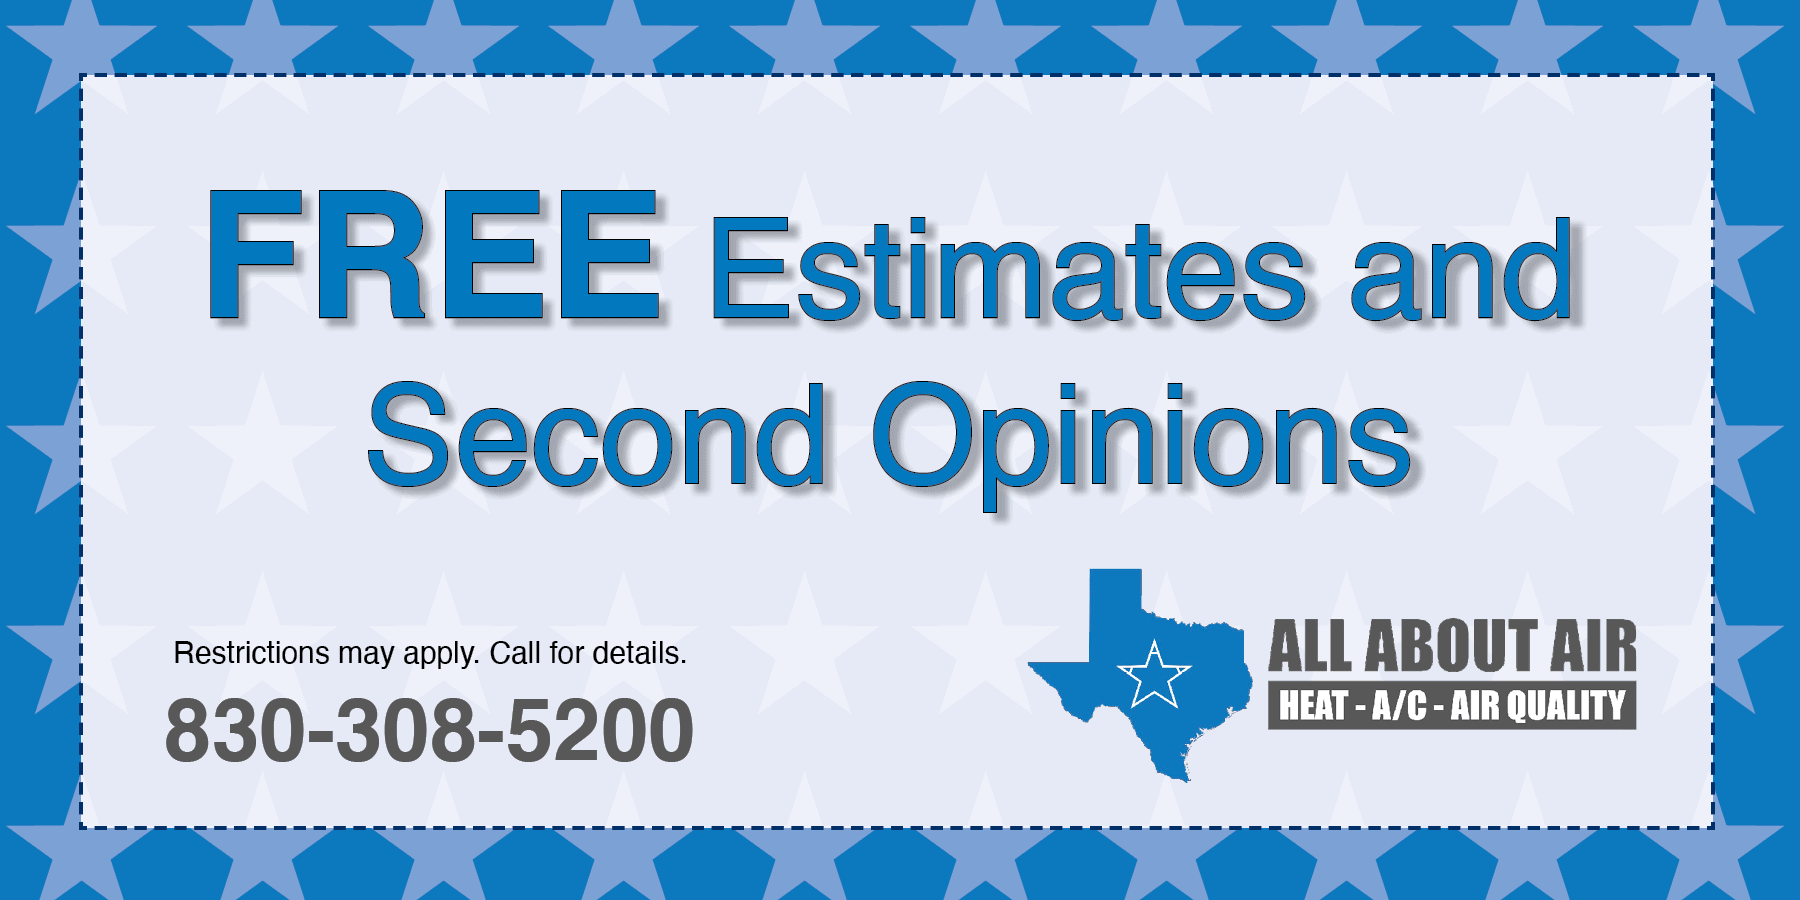 Free estimates and second opinions.